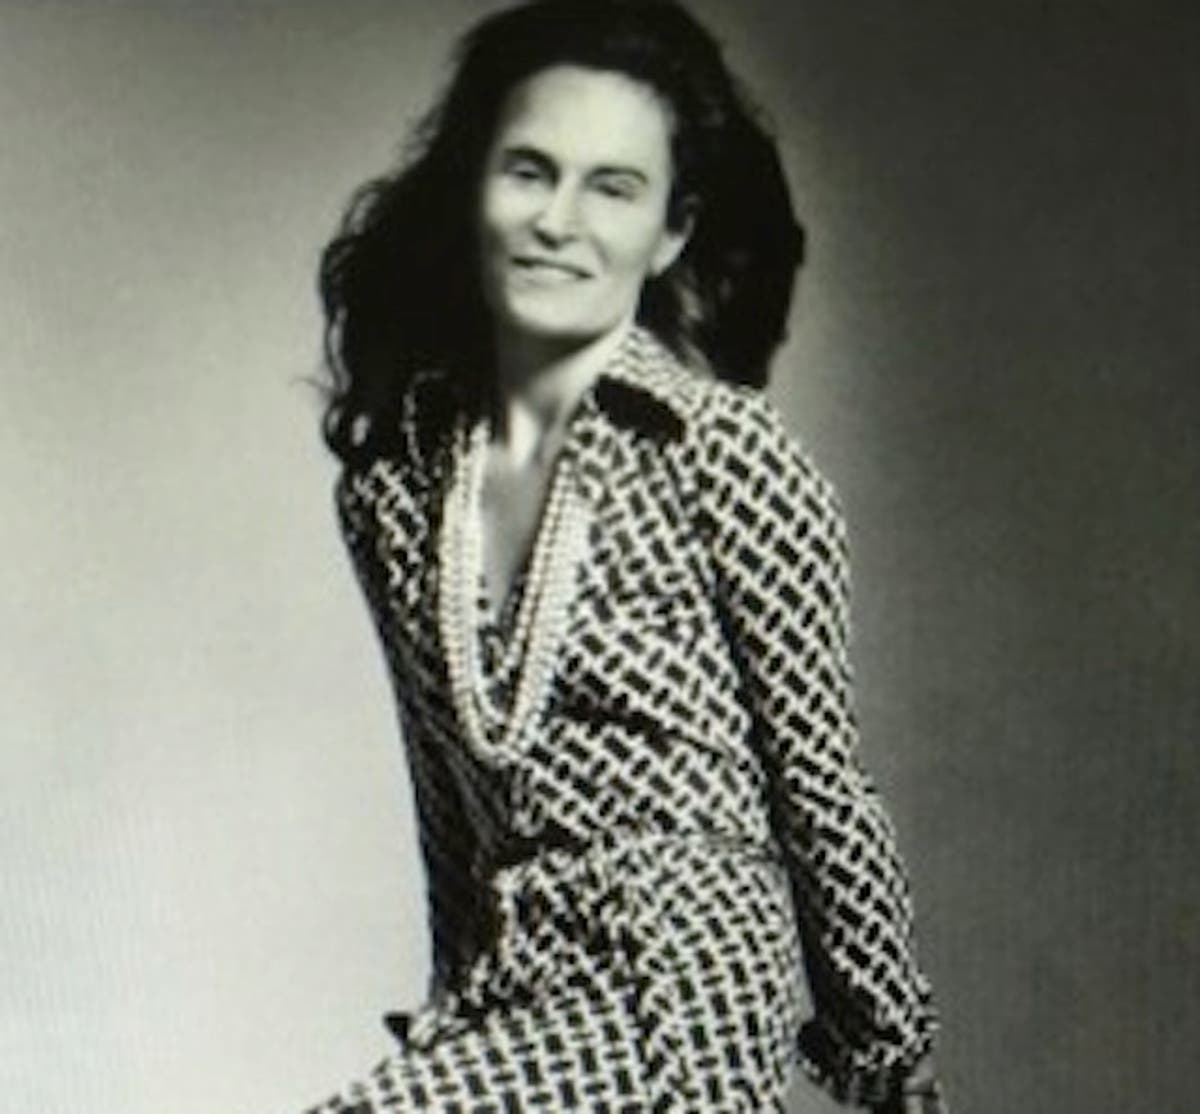 Diane Von Furstenberg Pastes Bruce Jenner S Face On Her Body In Bizarre Tribute Photo Washington Times